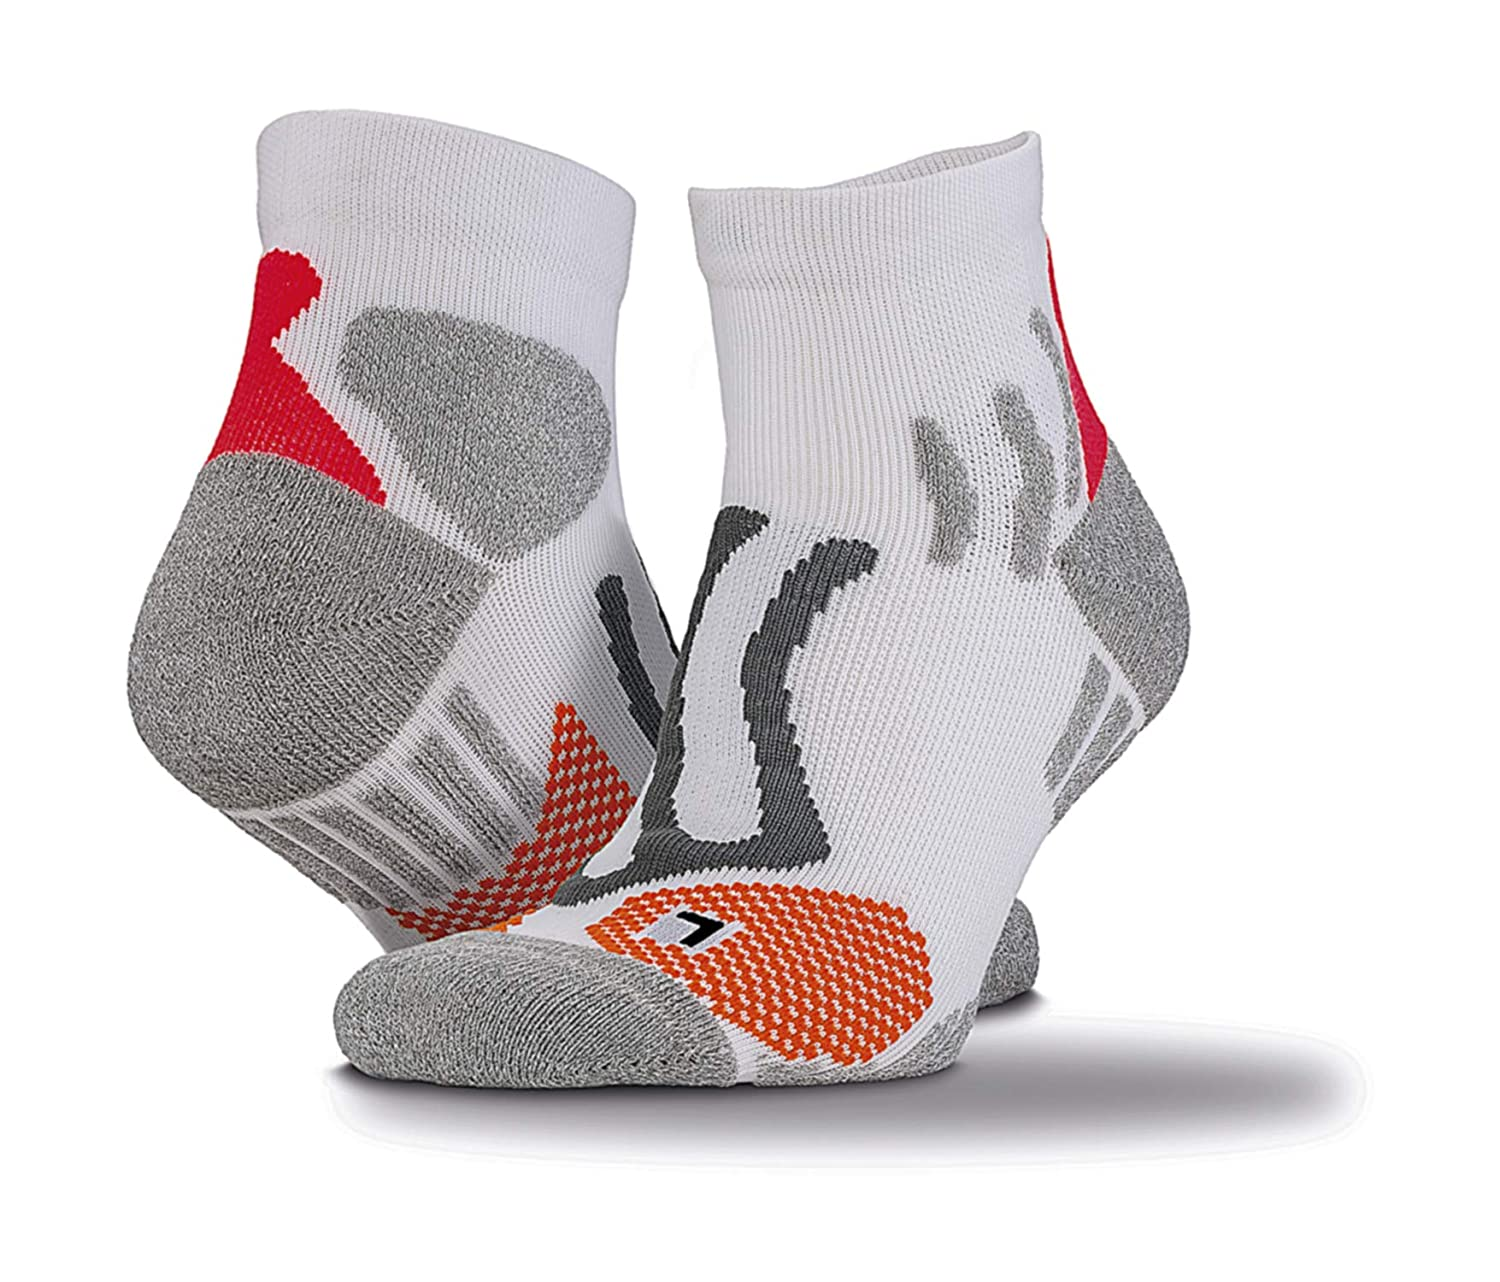 Compression Sports Socks for runners/Men and Women/s, Anti-bladder and Double Layered Cushioned Arch Support